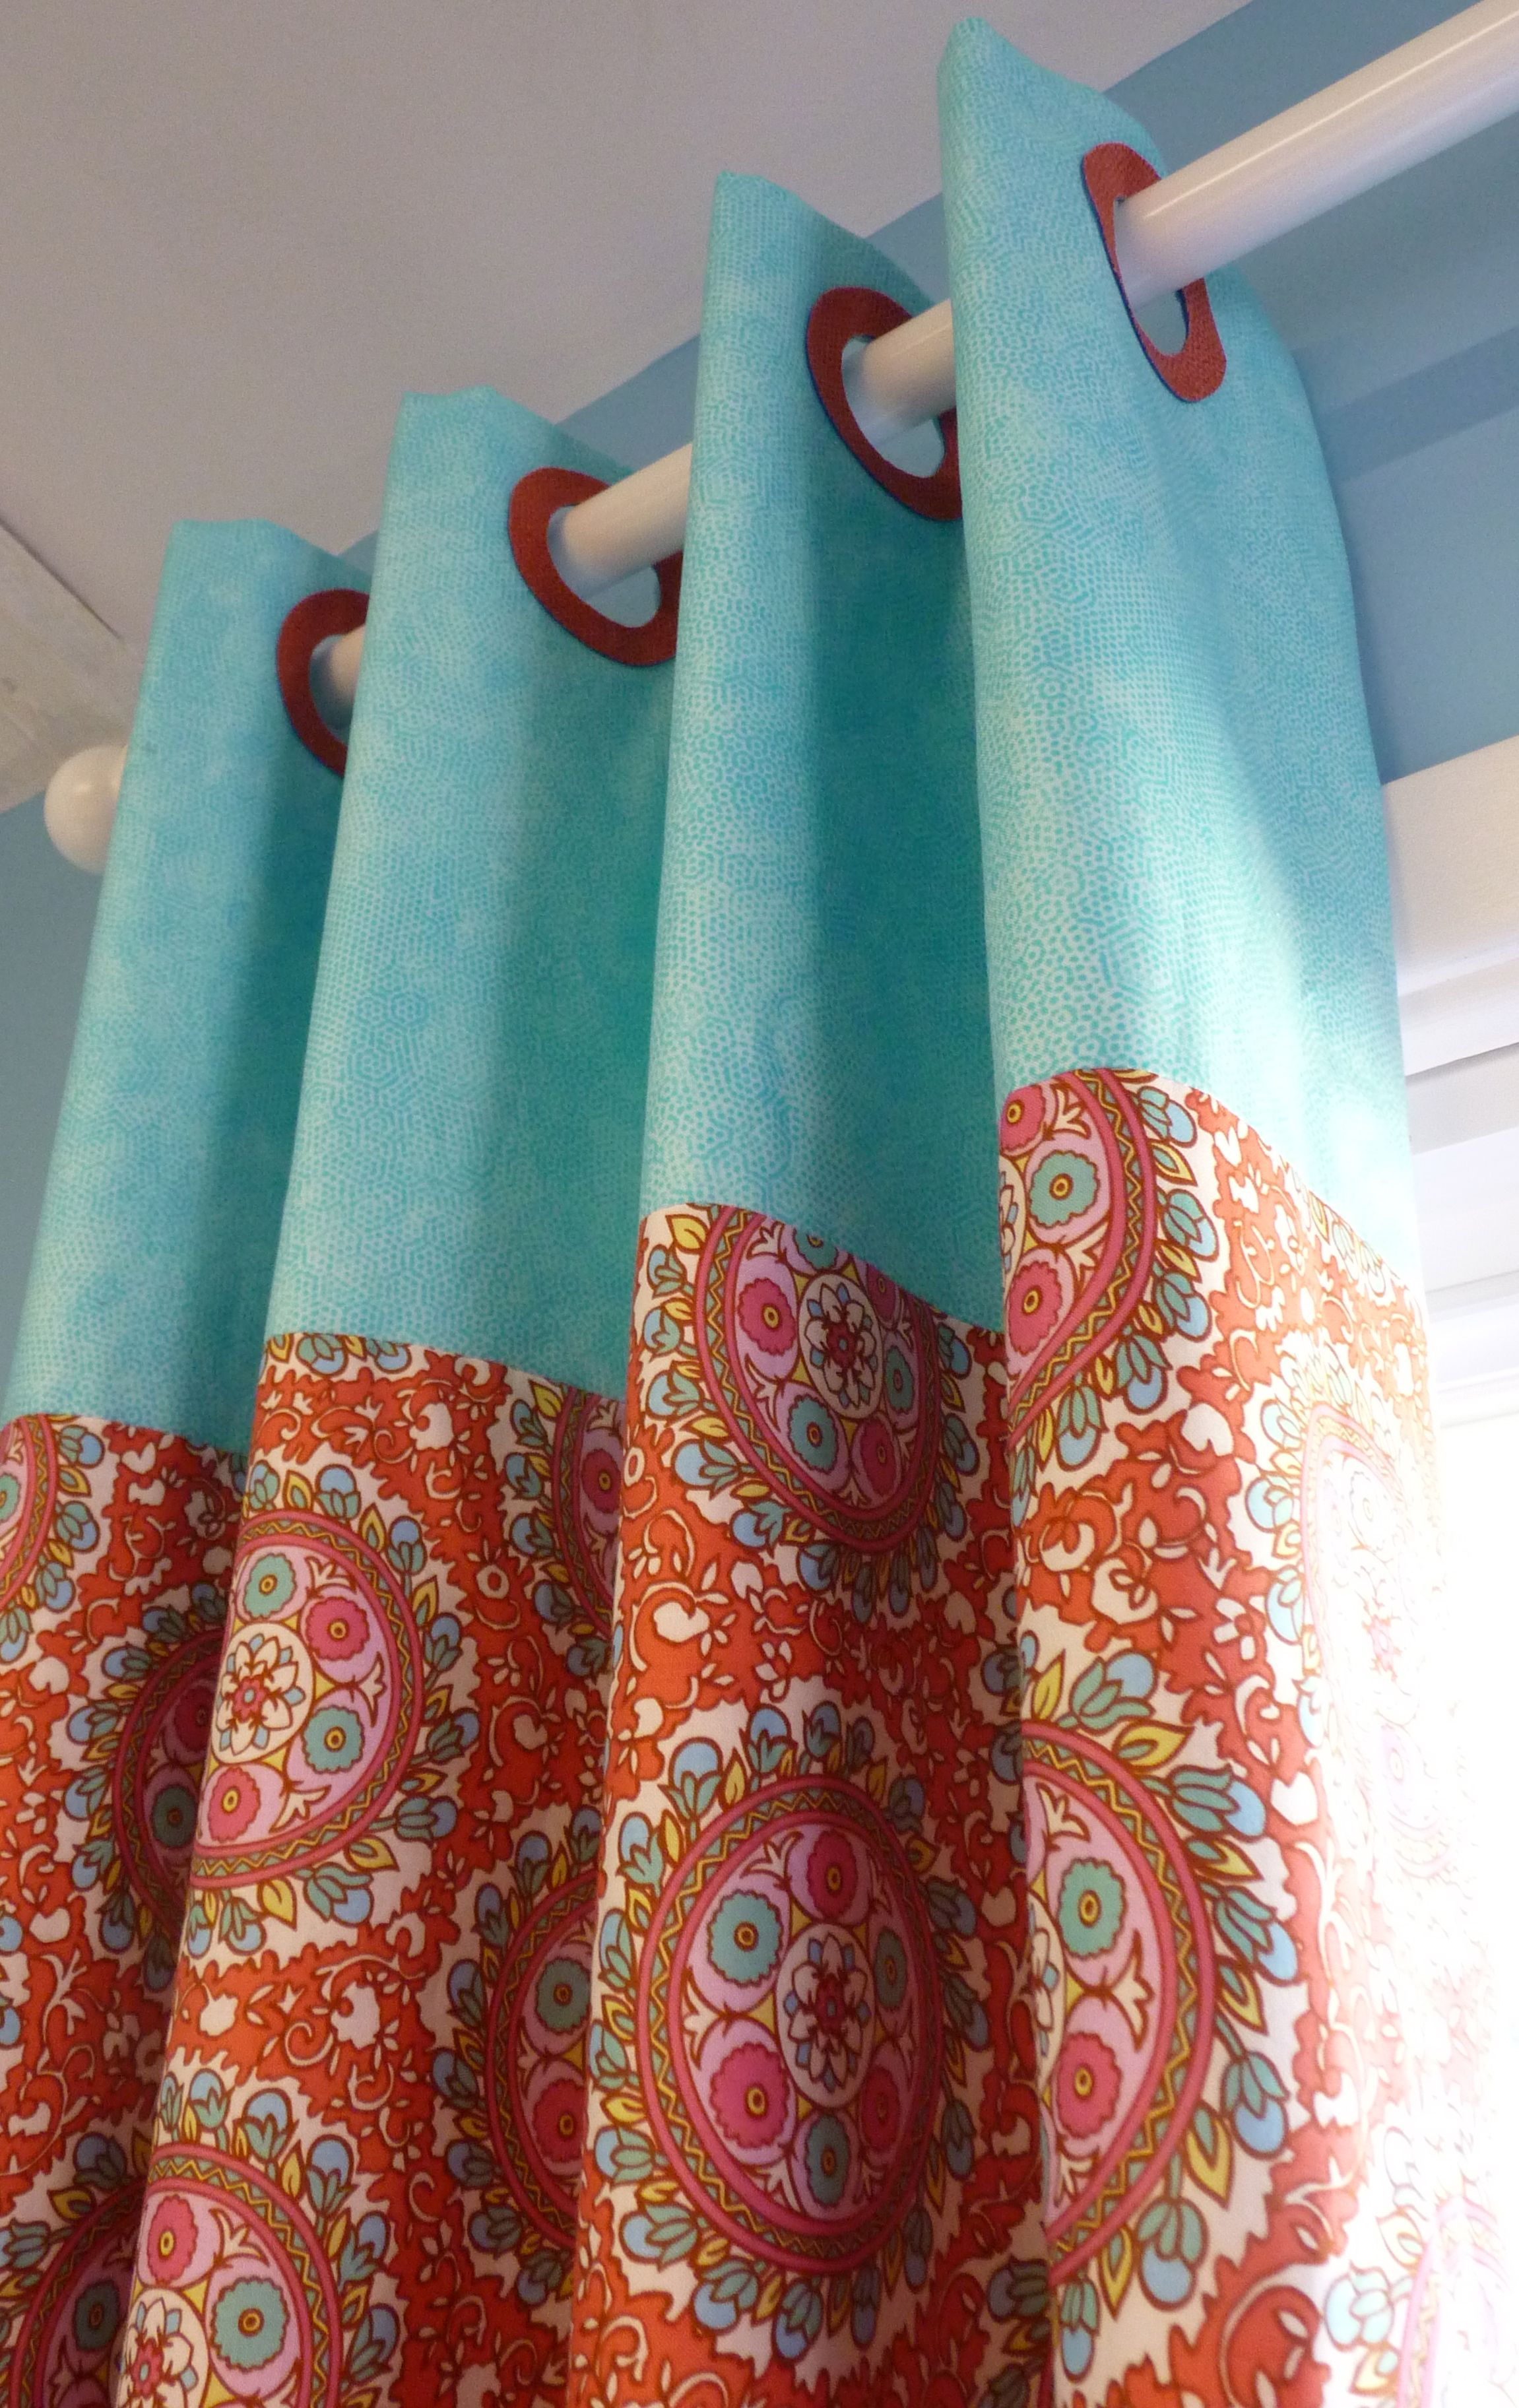 How To Make Lined Curtain Panels P1130049 Interiors Pinterest Curtains Fabric And Sewing